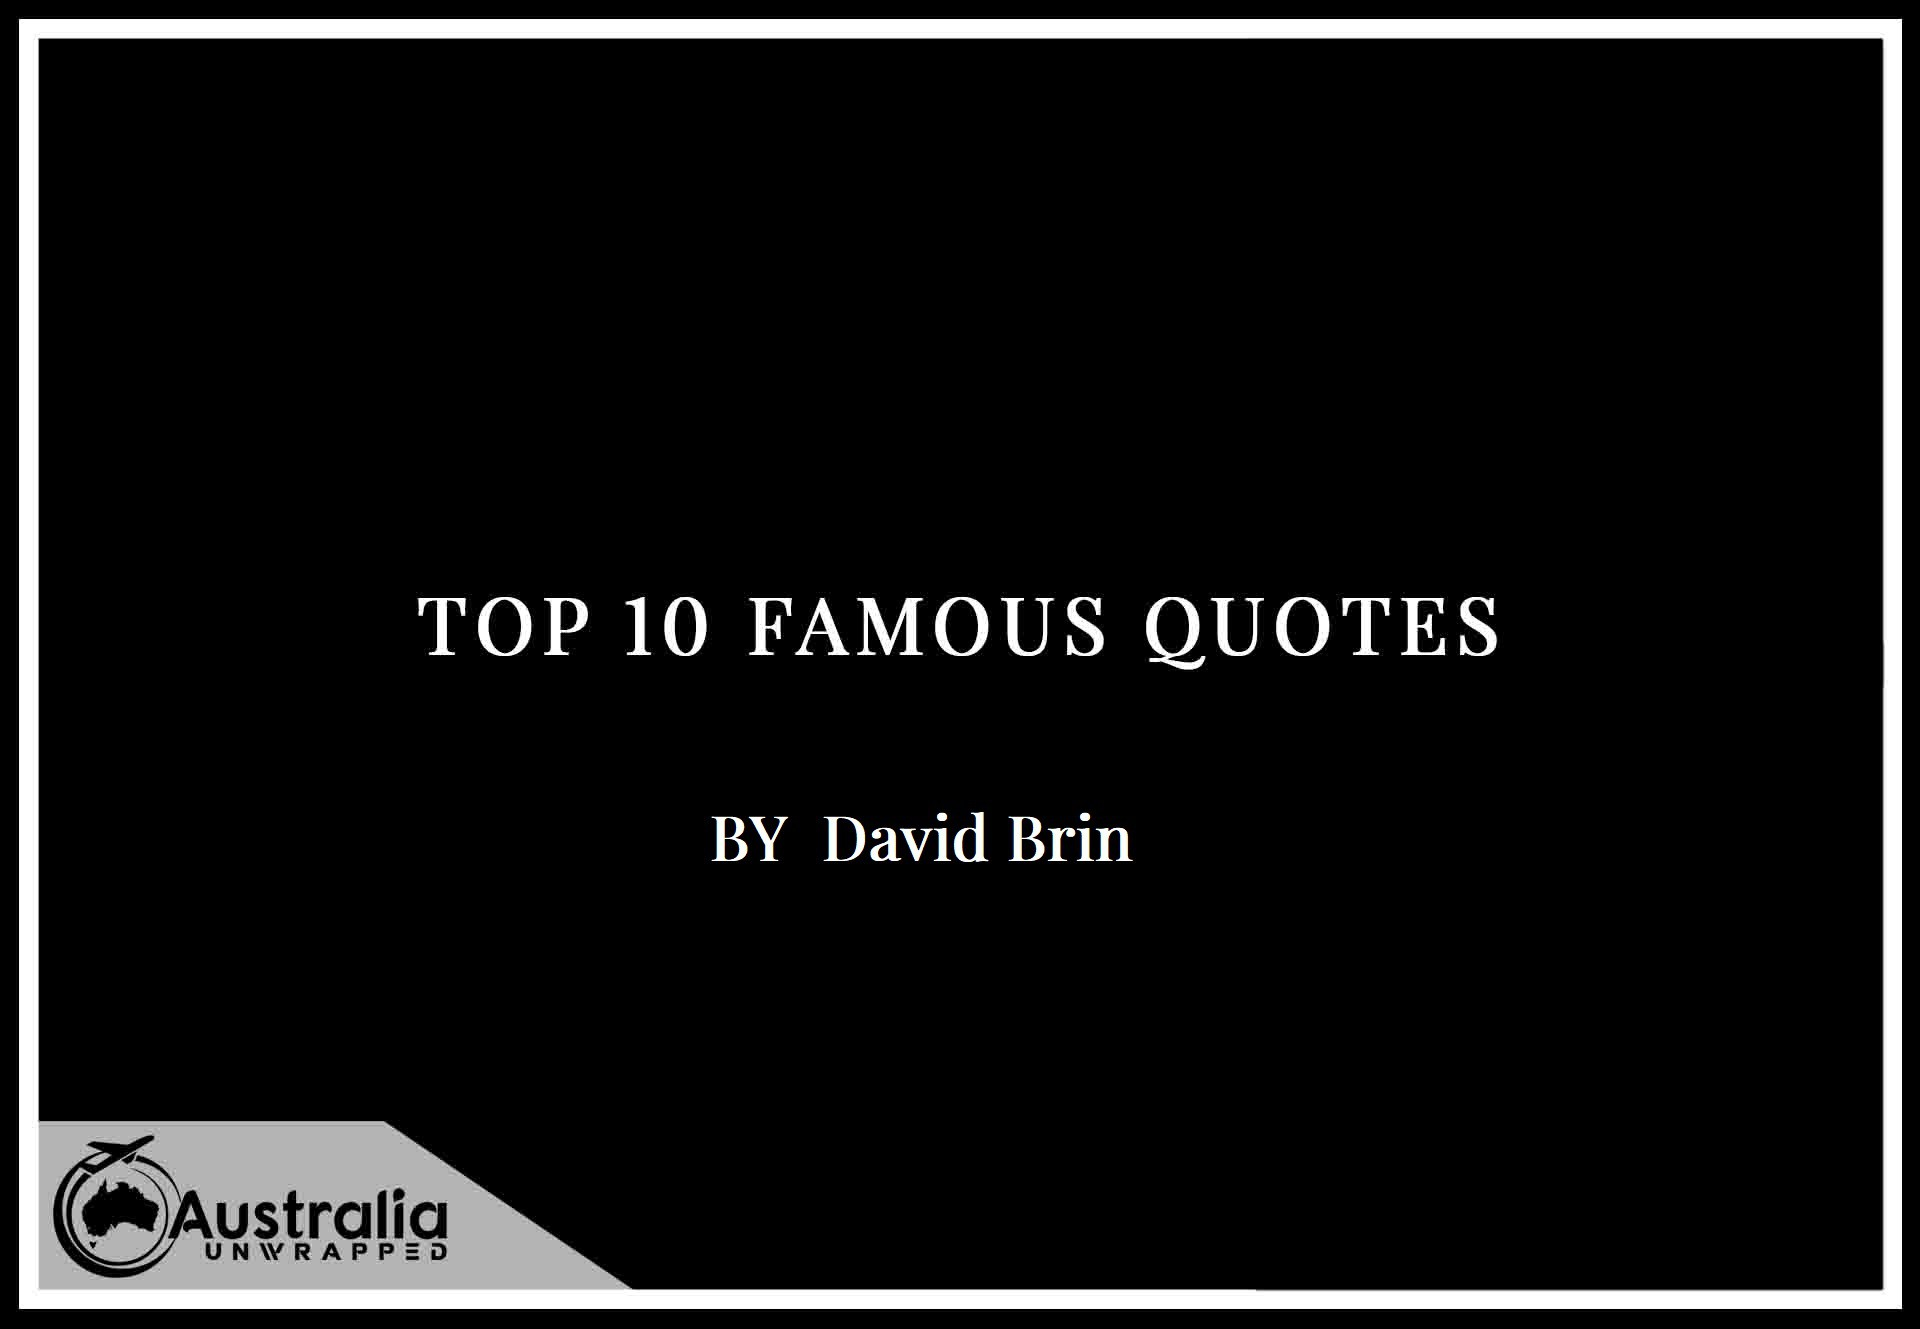 Top 10 Famous Quotes by Author David Brin